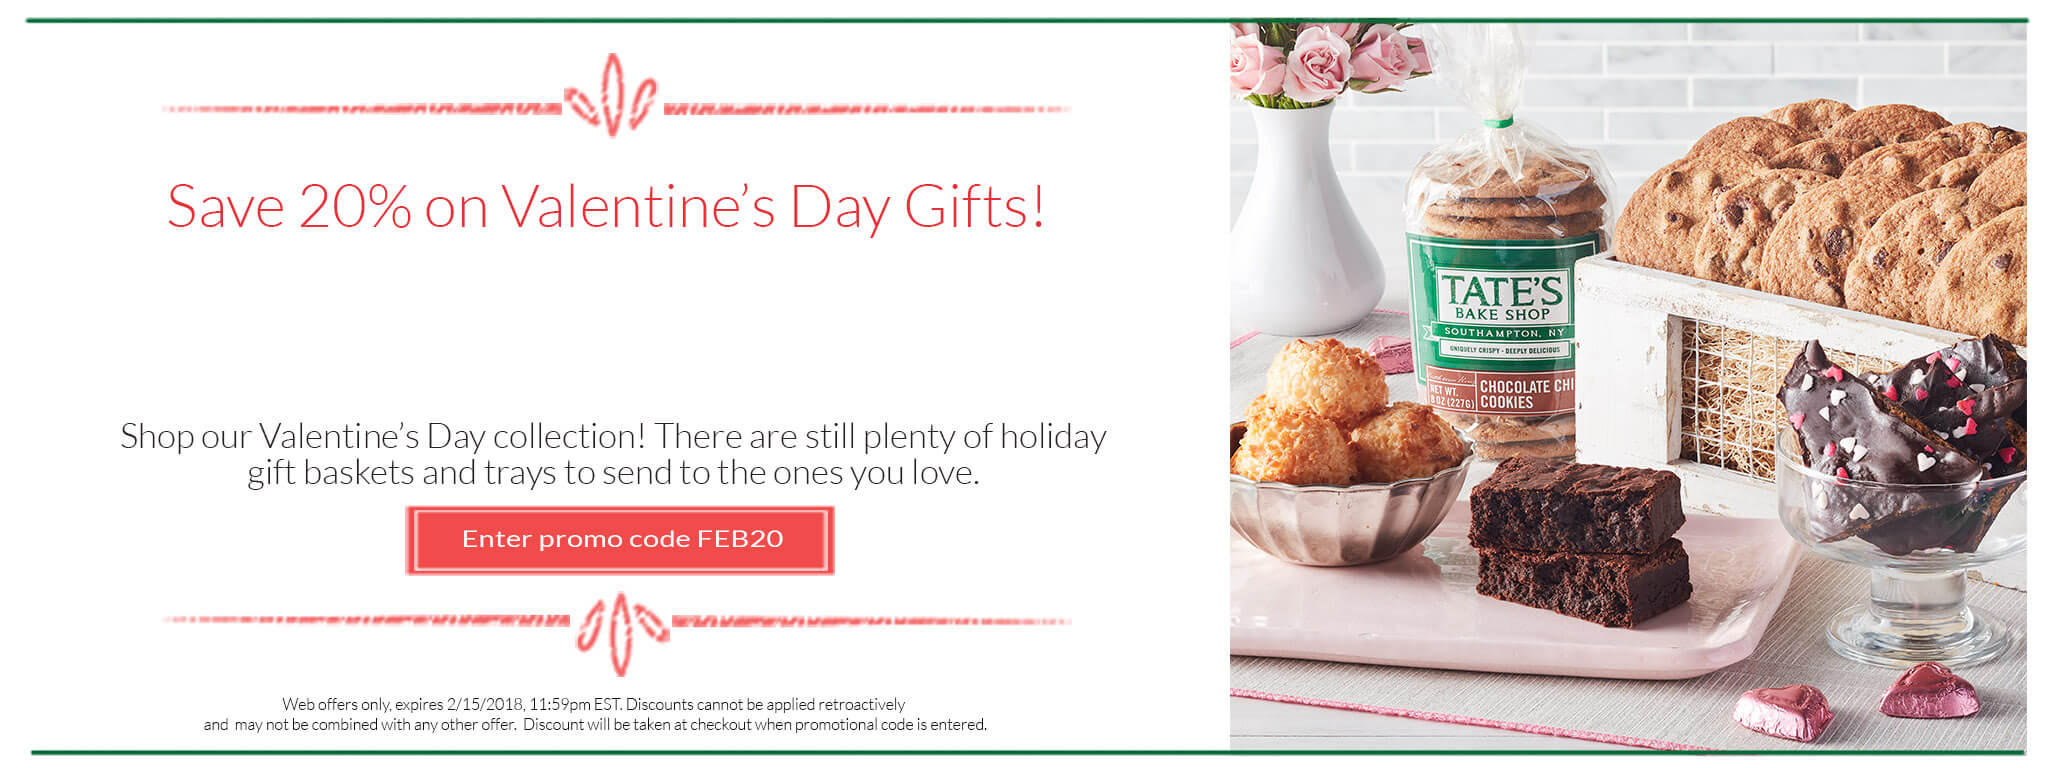 Save 20% on Valentine's Day Gifts